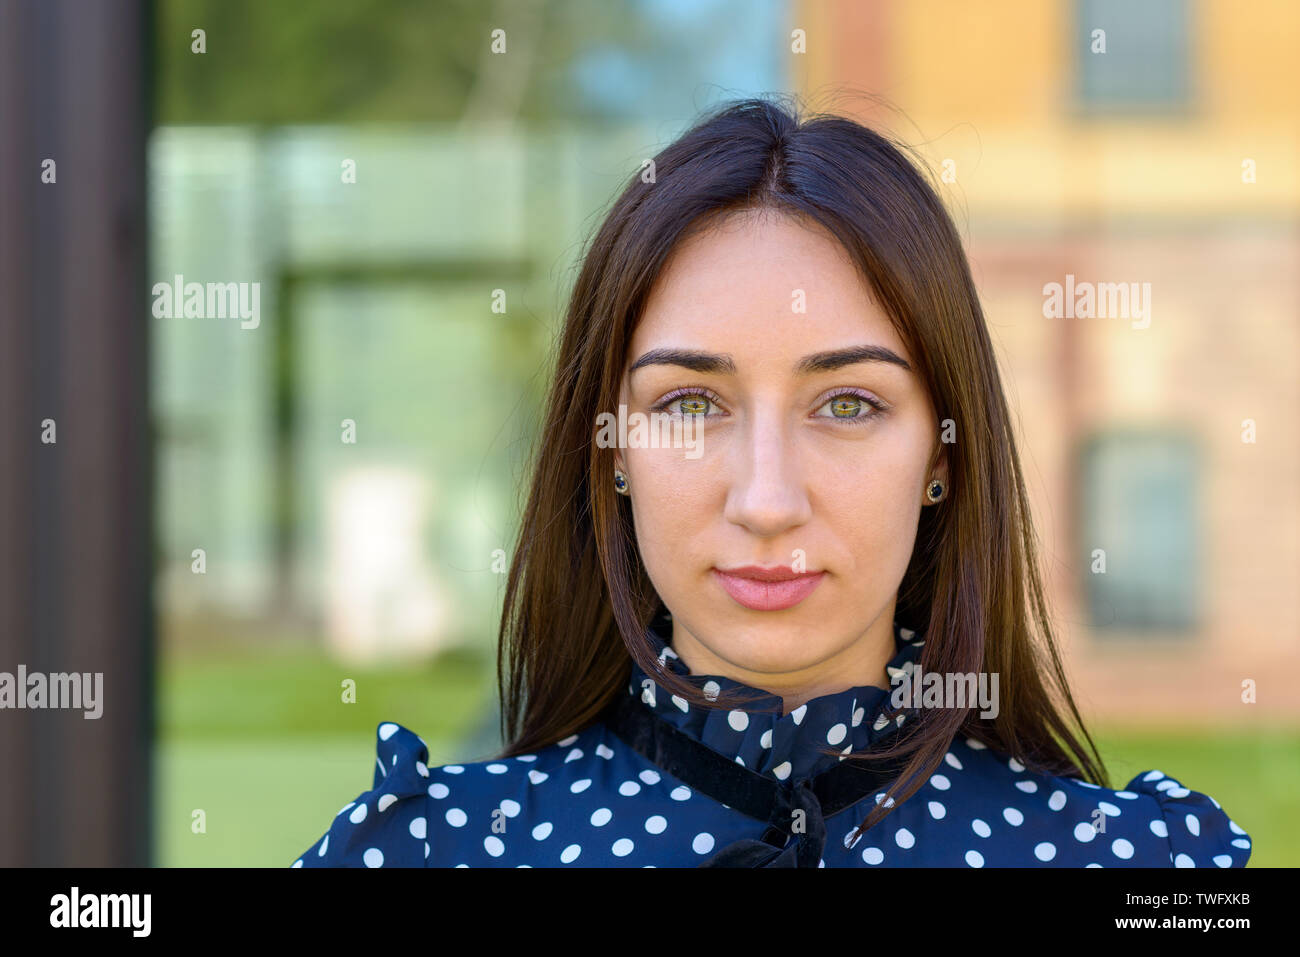 Close up of an serious demure stylish young woman in a stylish blue and white outfit and copy space - Stock Image